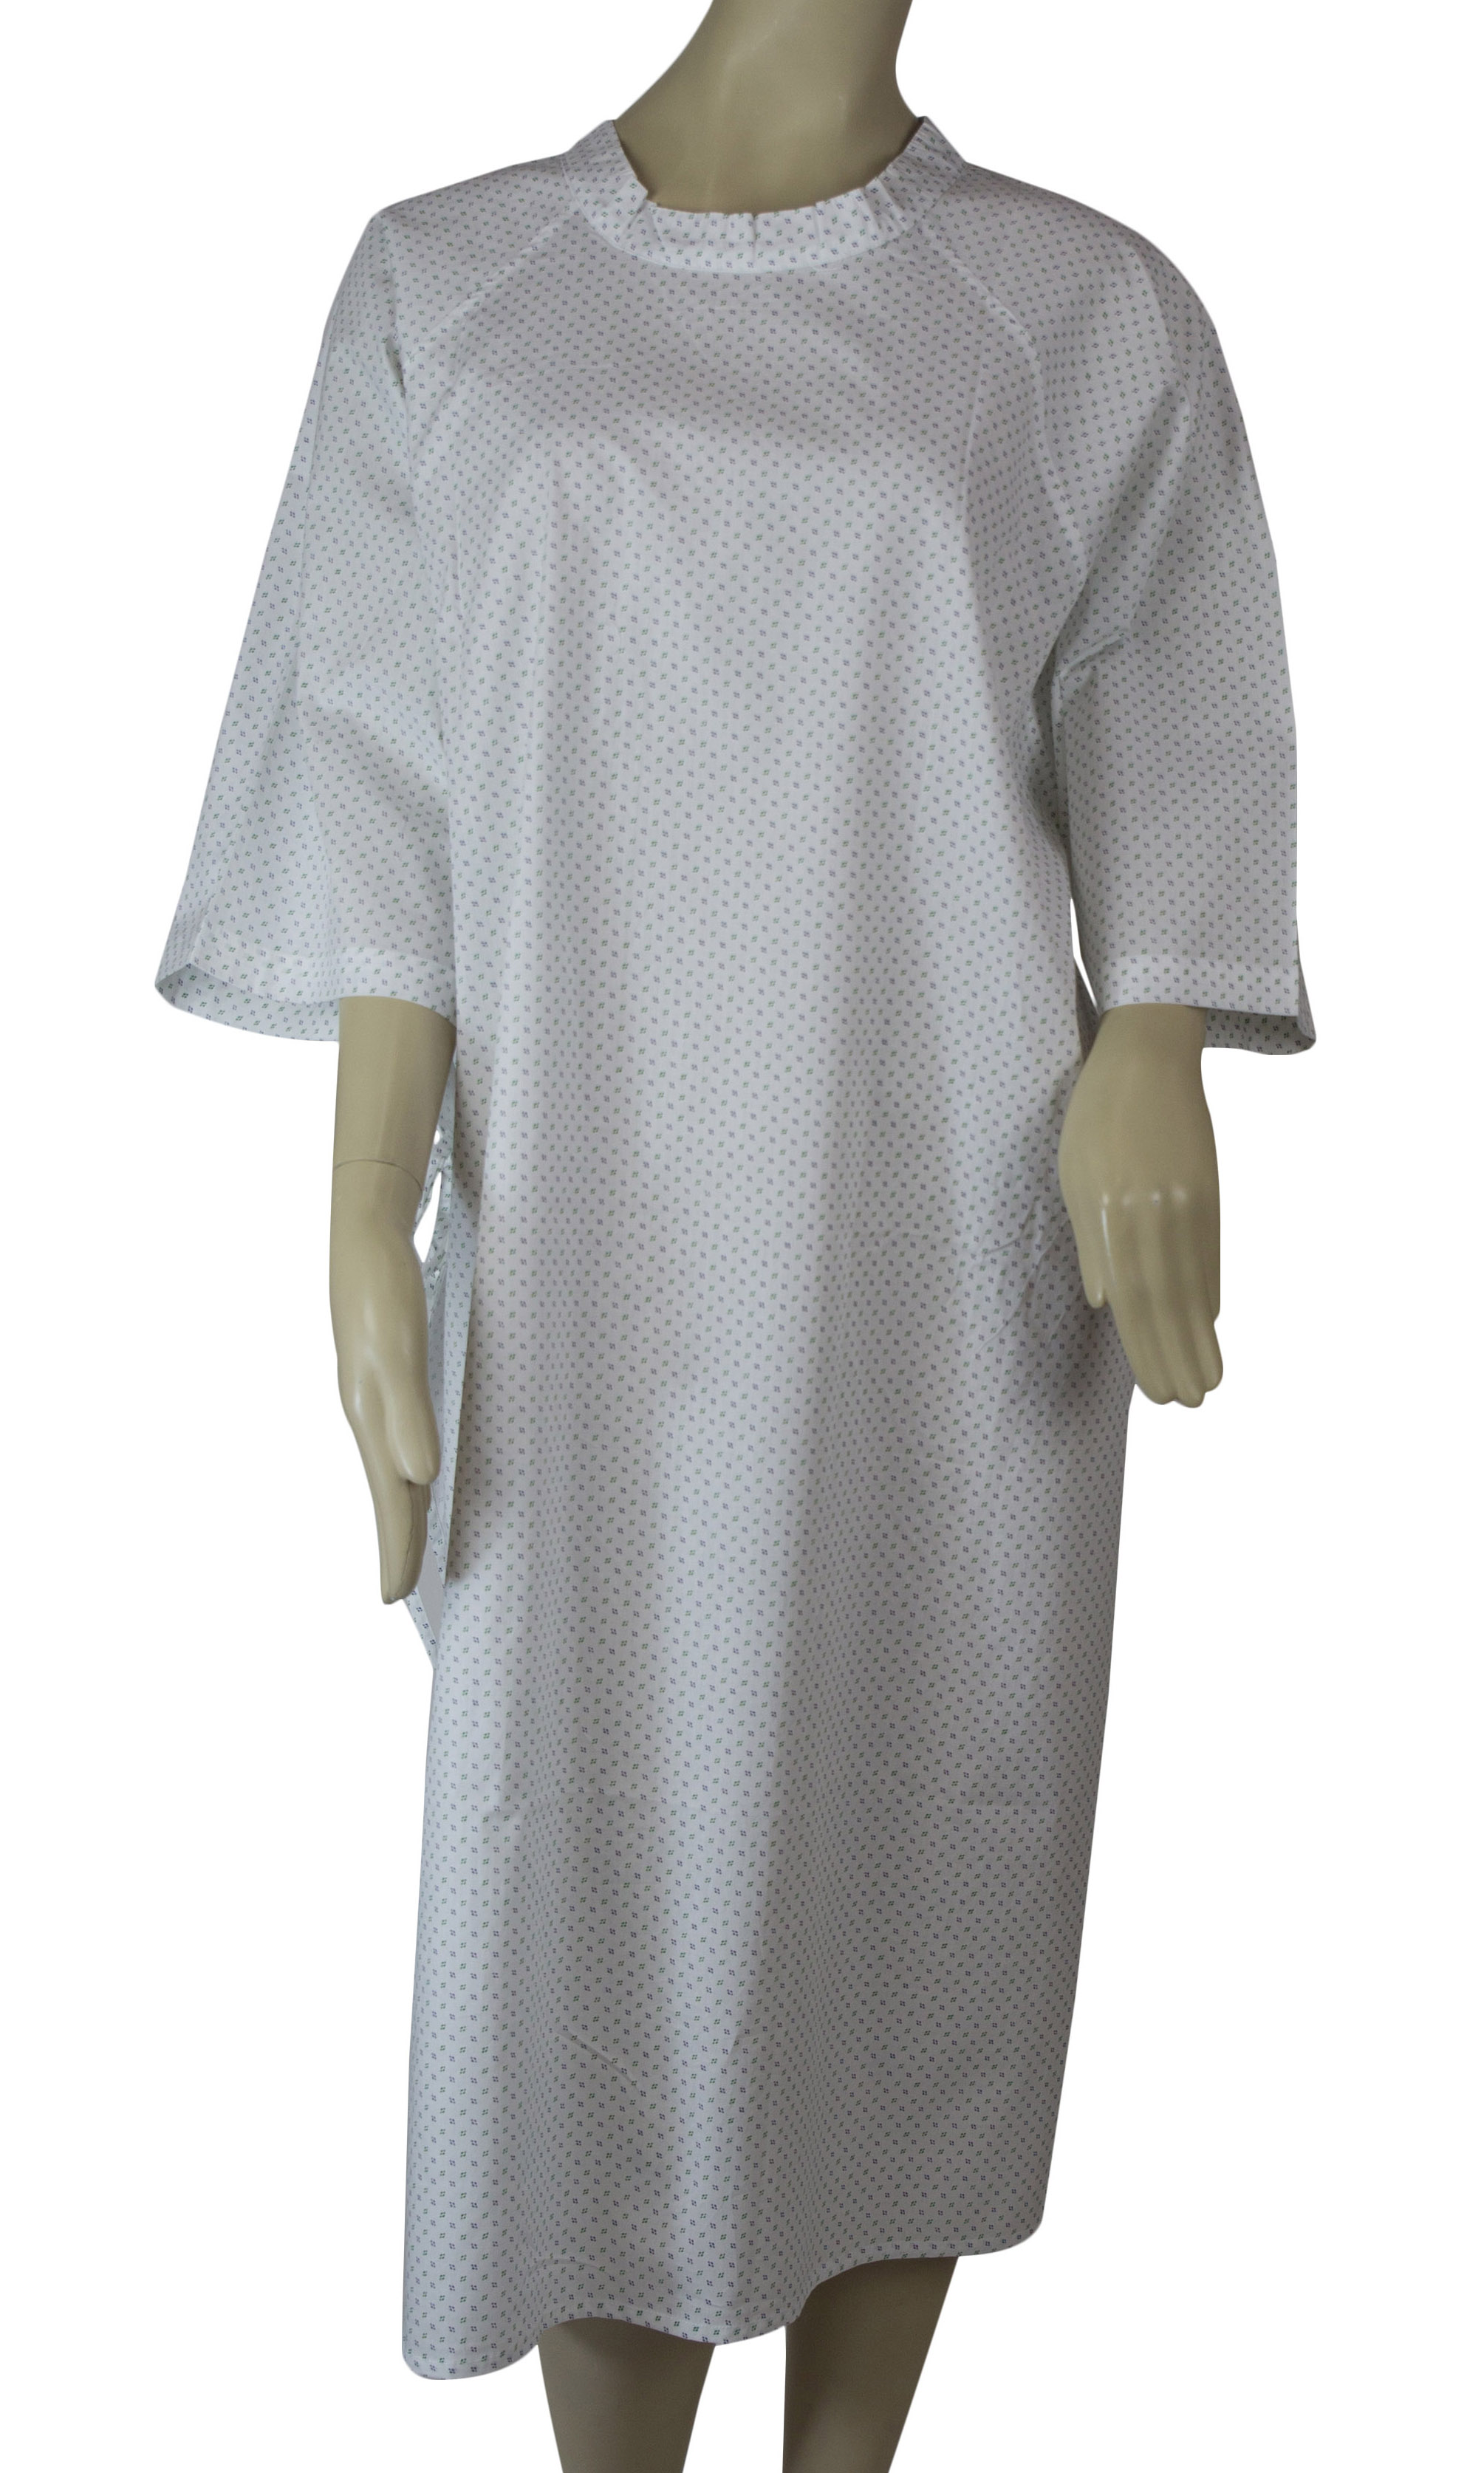 PatientGown-SP10